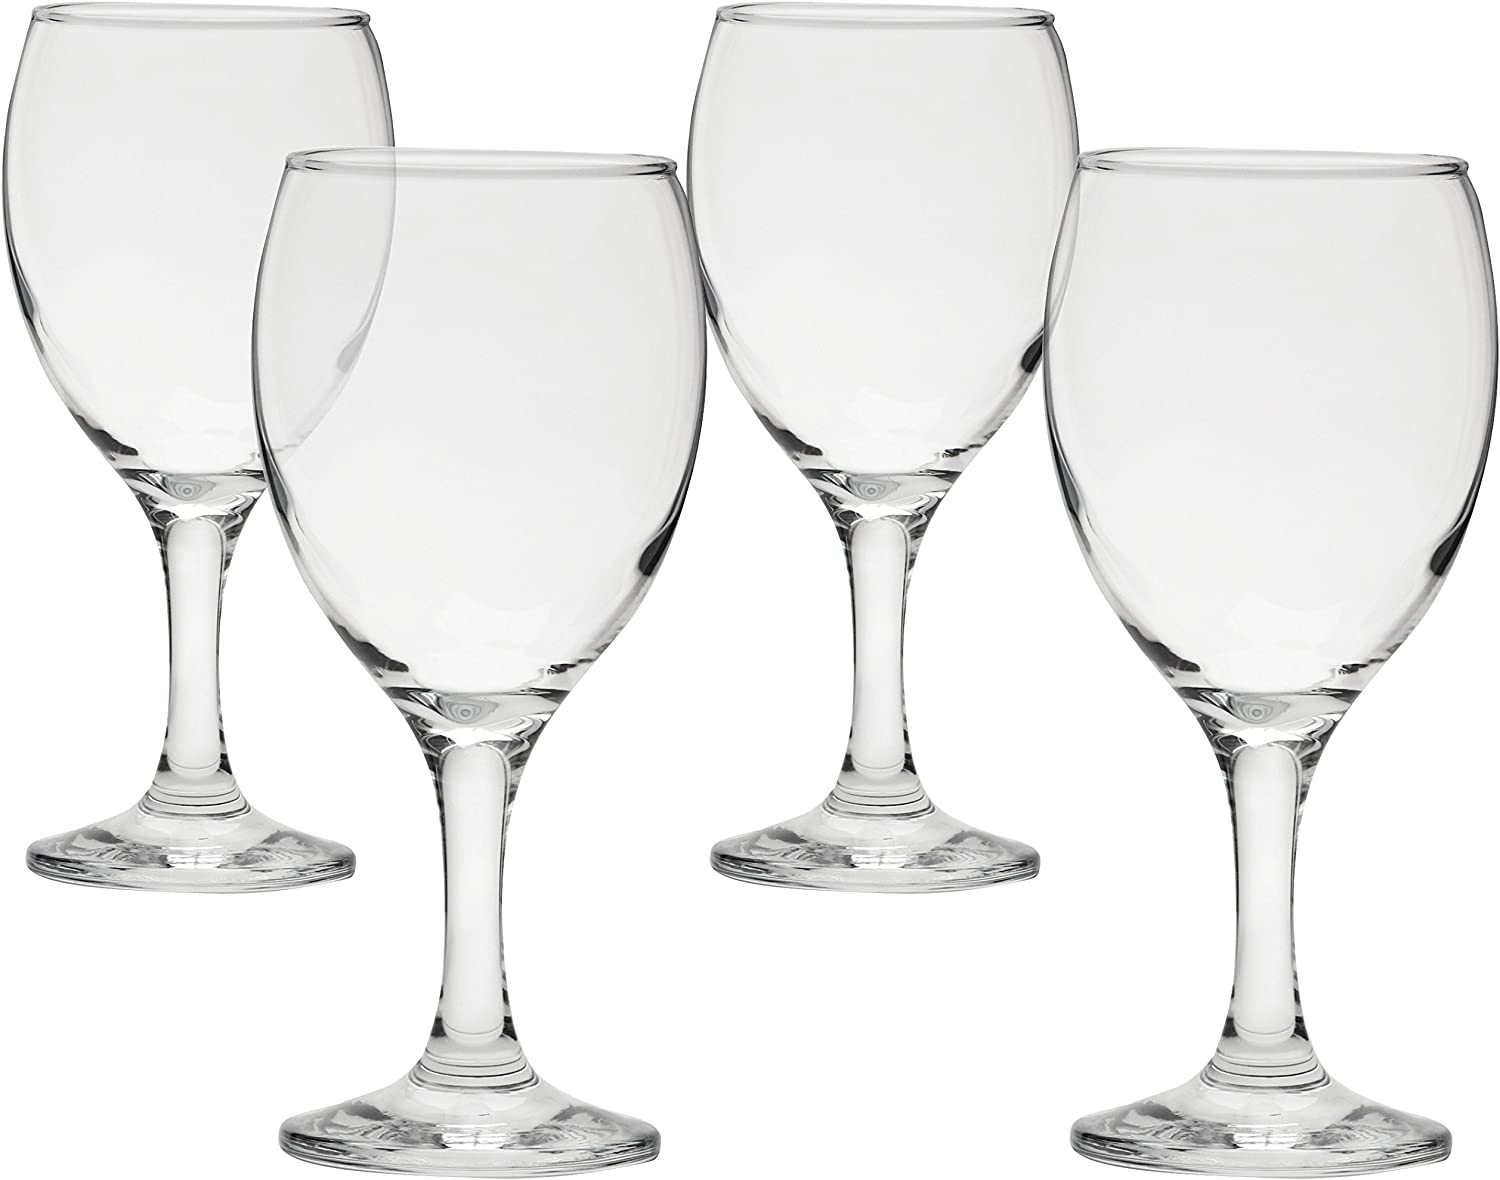 Circleware Vine Wine Glasses, Set of 4, 11 oz, Clear